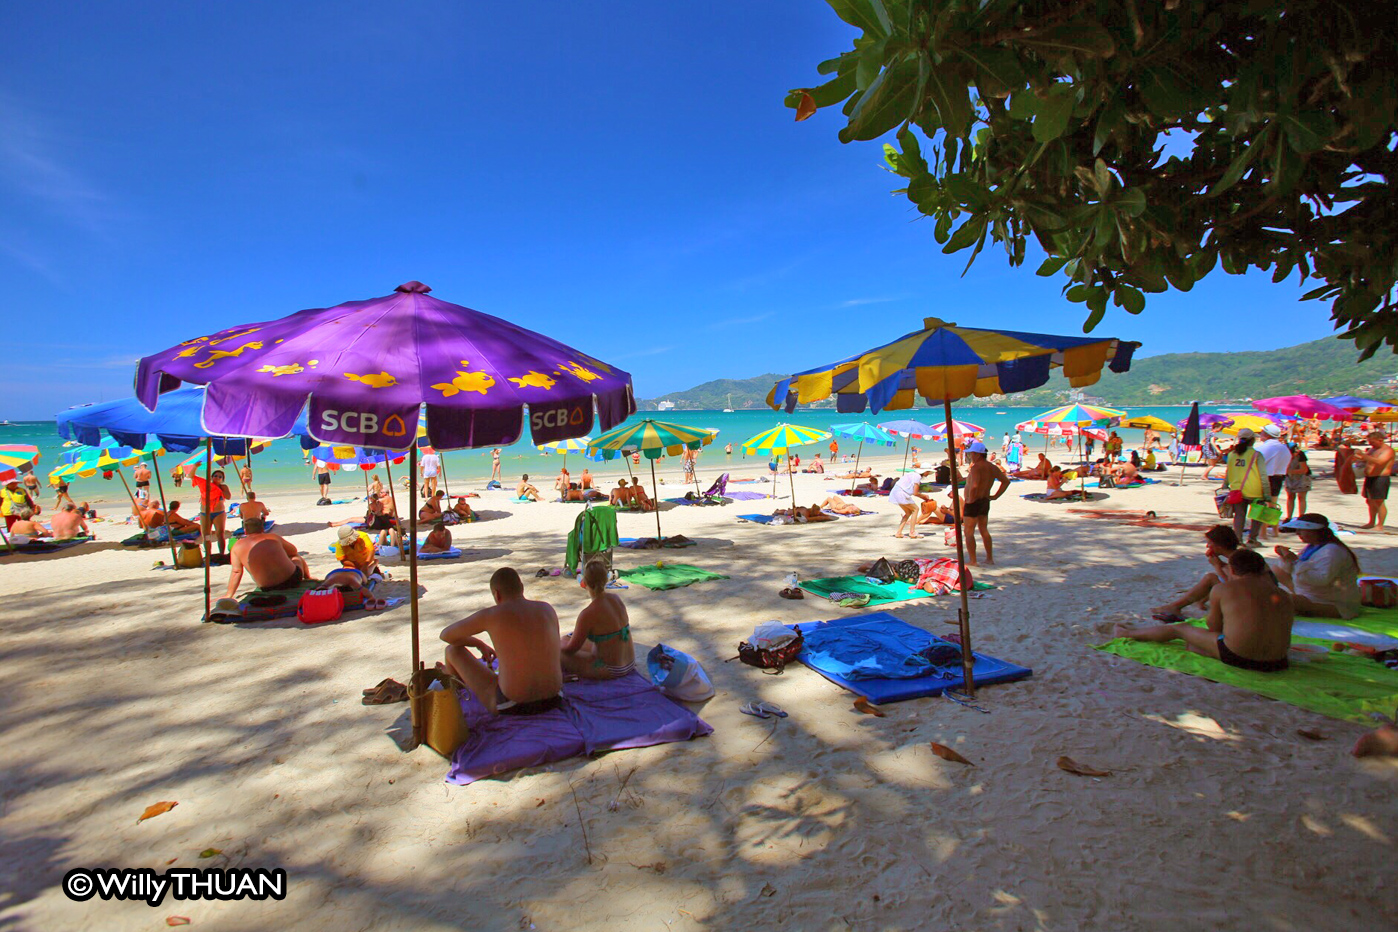 Patong Beach – A Quick Overview of Patong